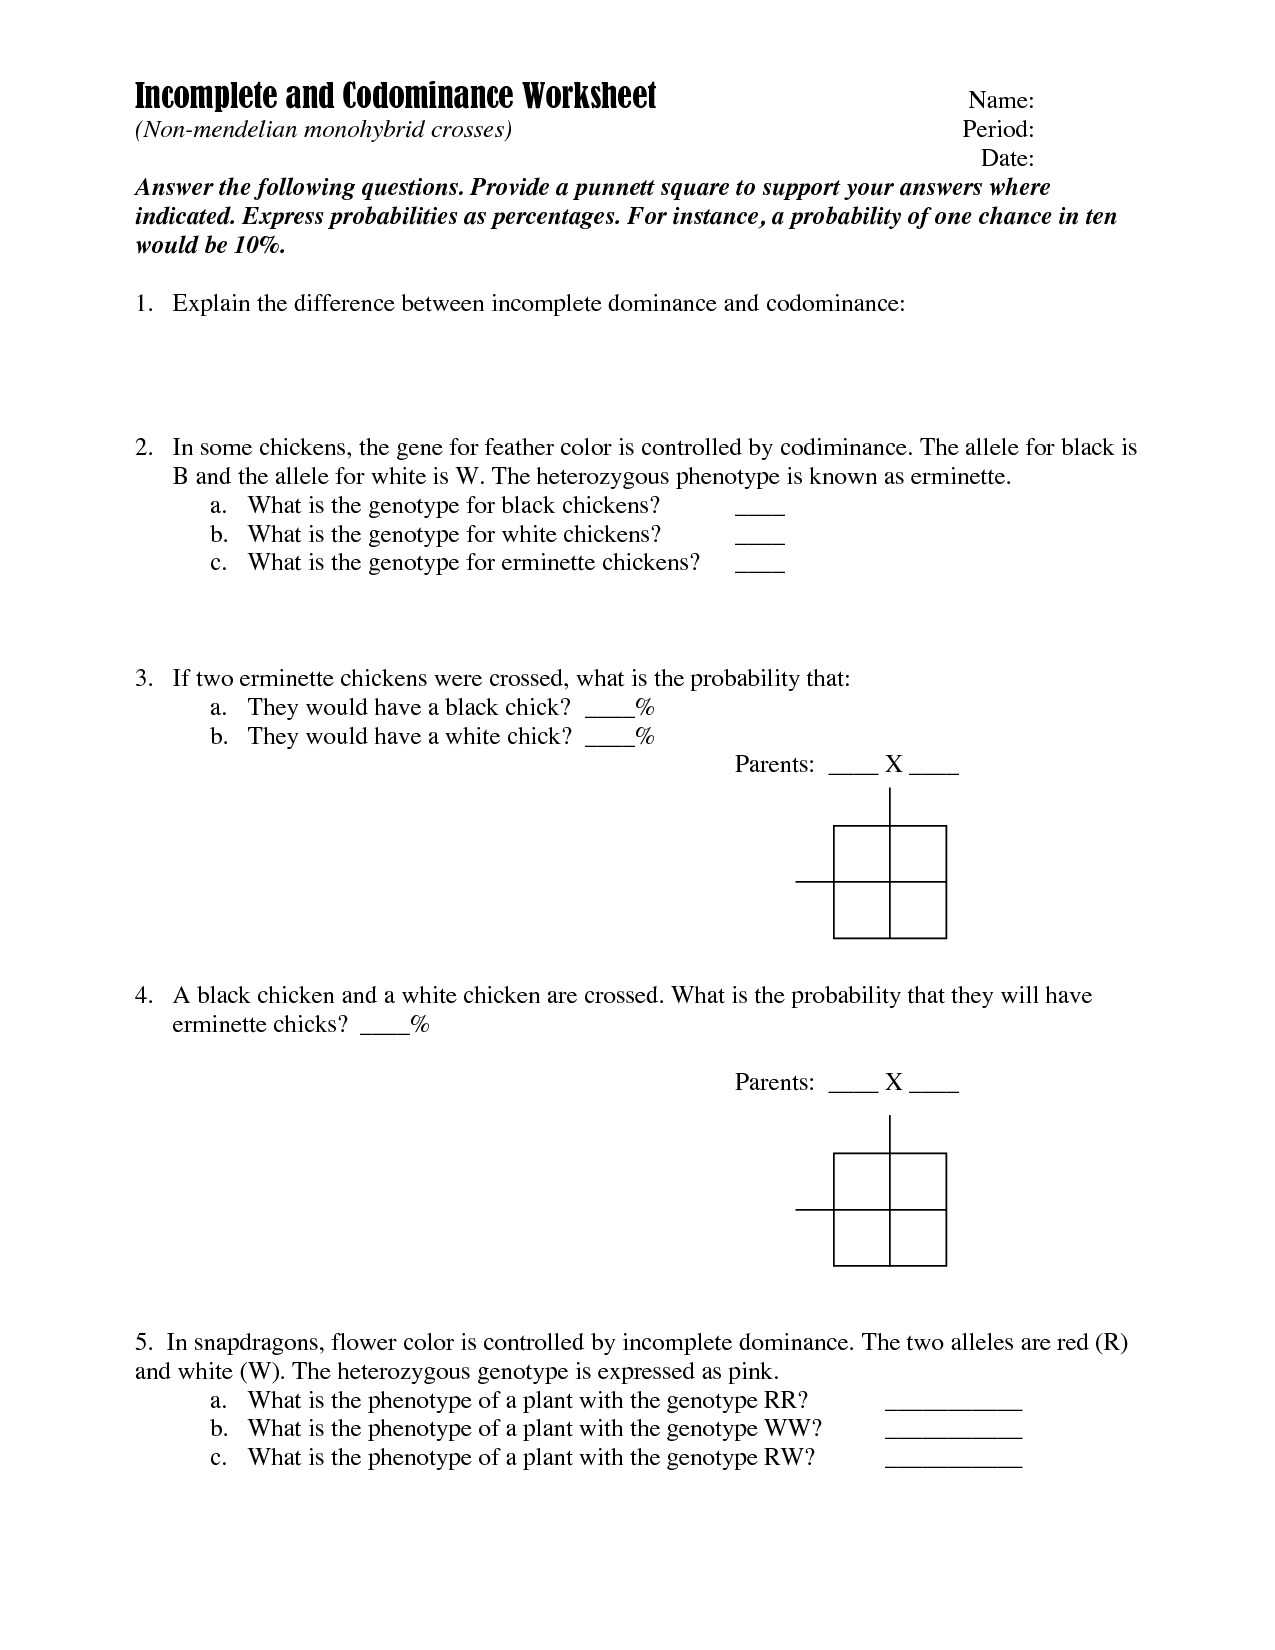 16 Best Images Of Incomplete And Codominance Worksheet